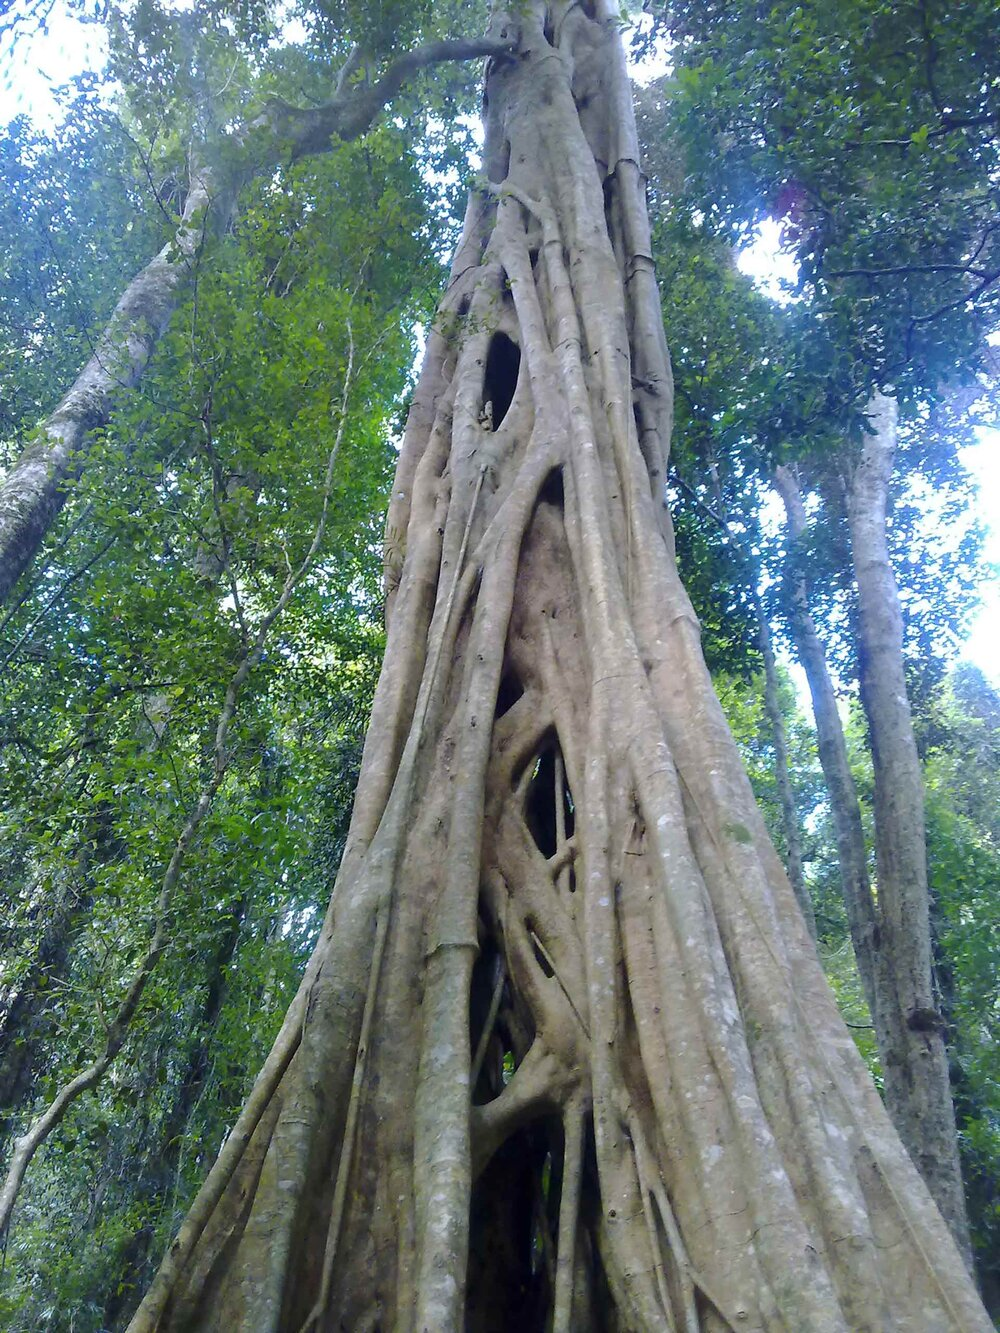 Ficus watkinsiana  is s strangler fig. This one probably started life in a puddle of bird poo in the crook of a branch of a tree. That original tree probably died long ago and has decomposed; you can see the gaps between the roots that now support a successful and mature banyan tree.    Image source